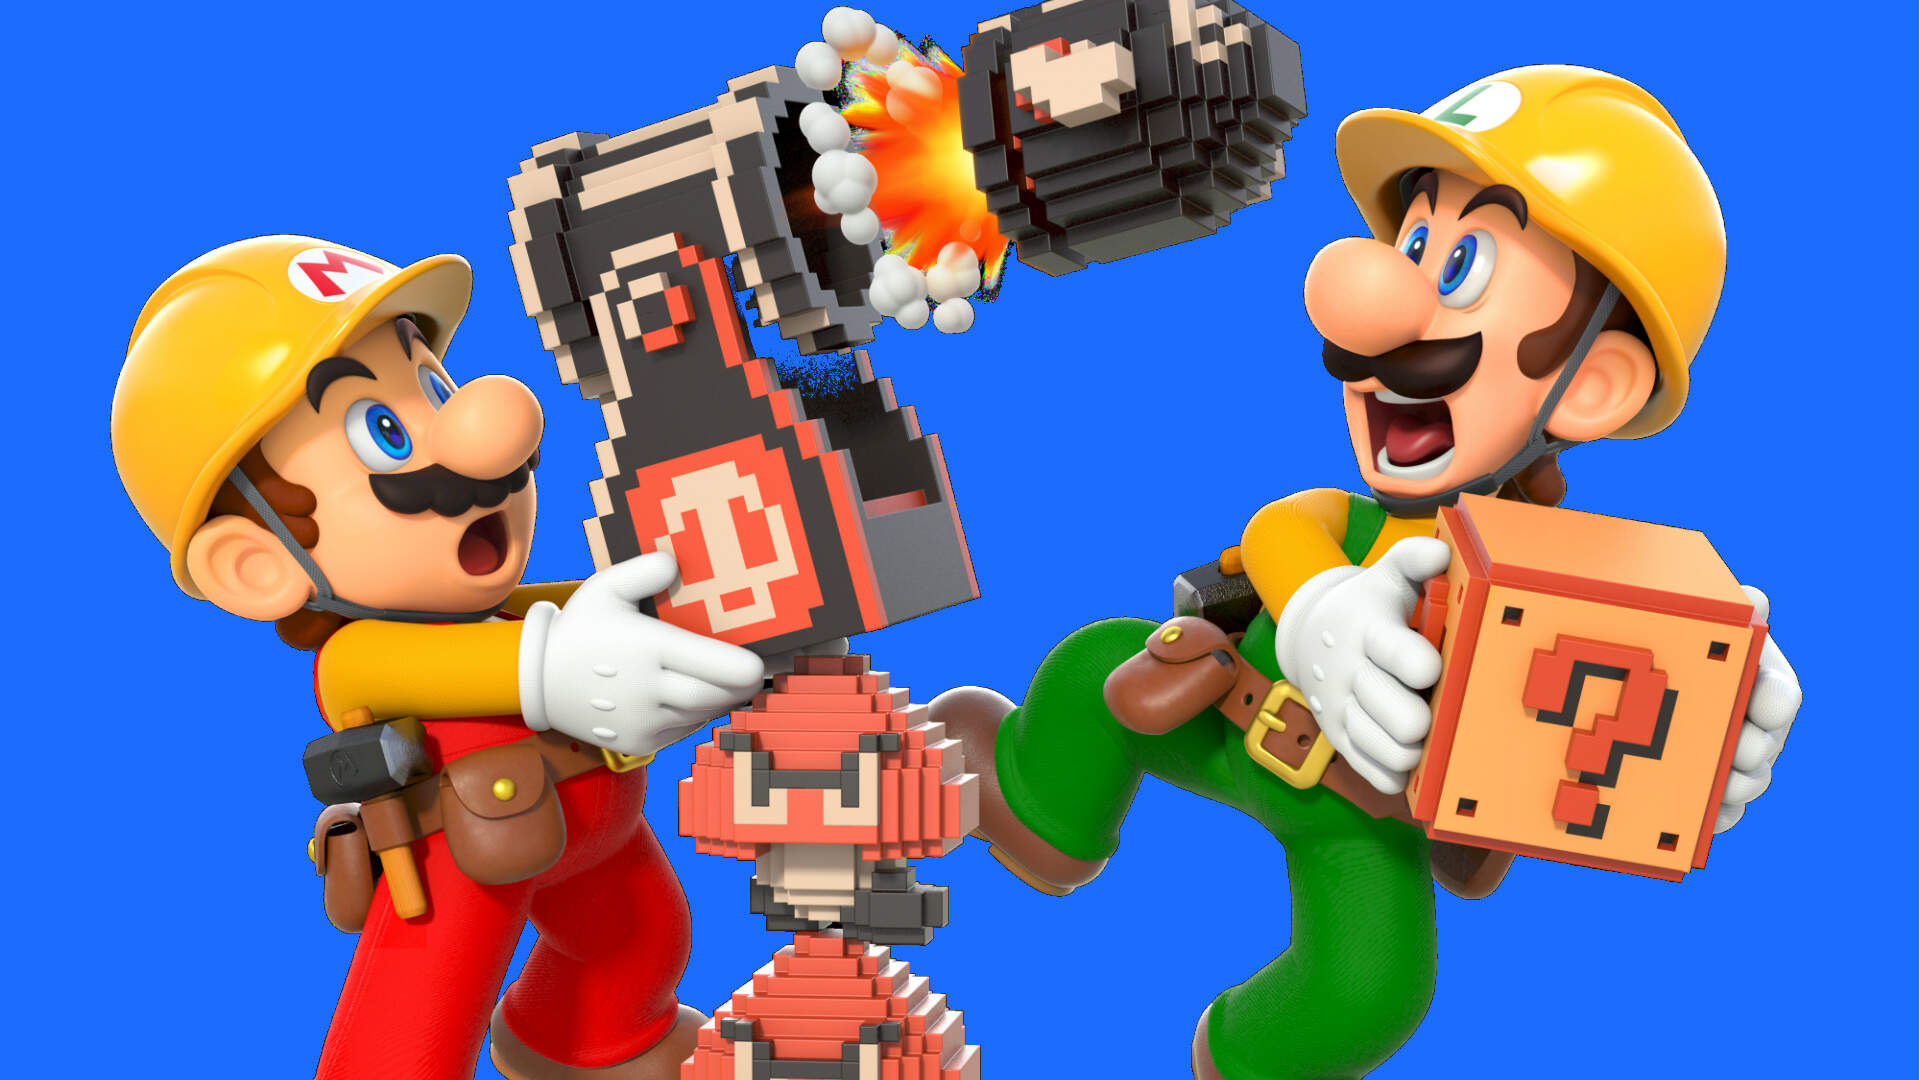 You Have To Unlock The Night Theme In Super Mario Maker 2 Usgamer